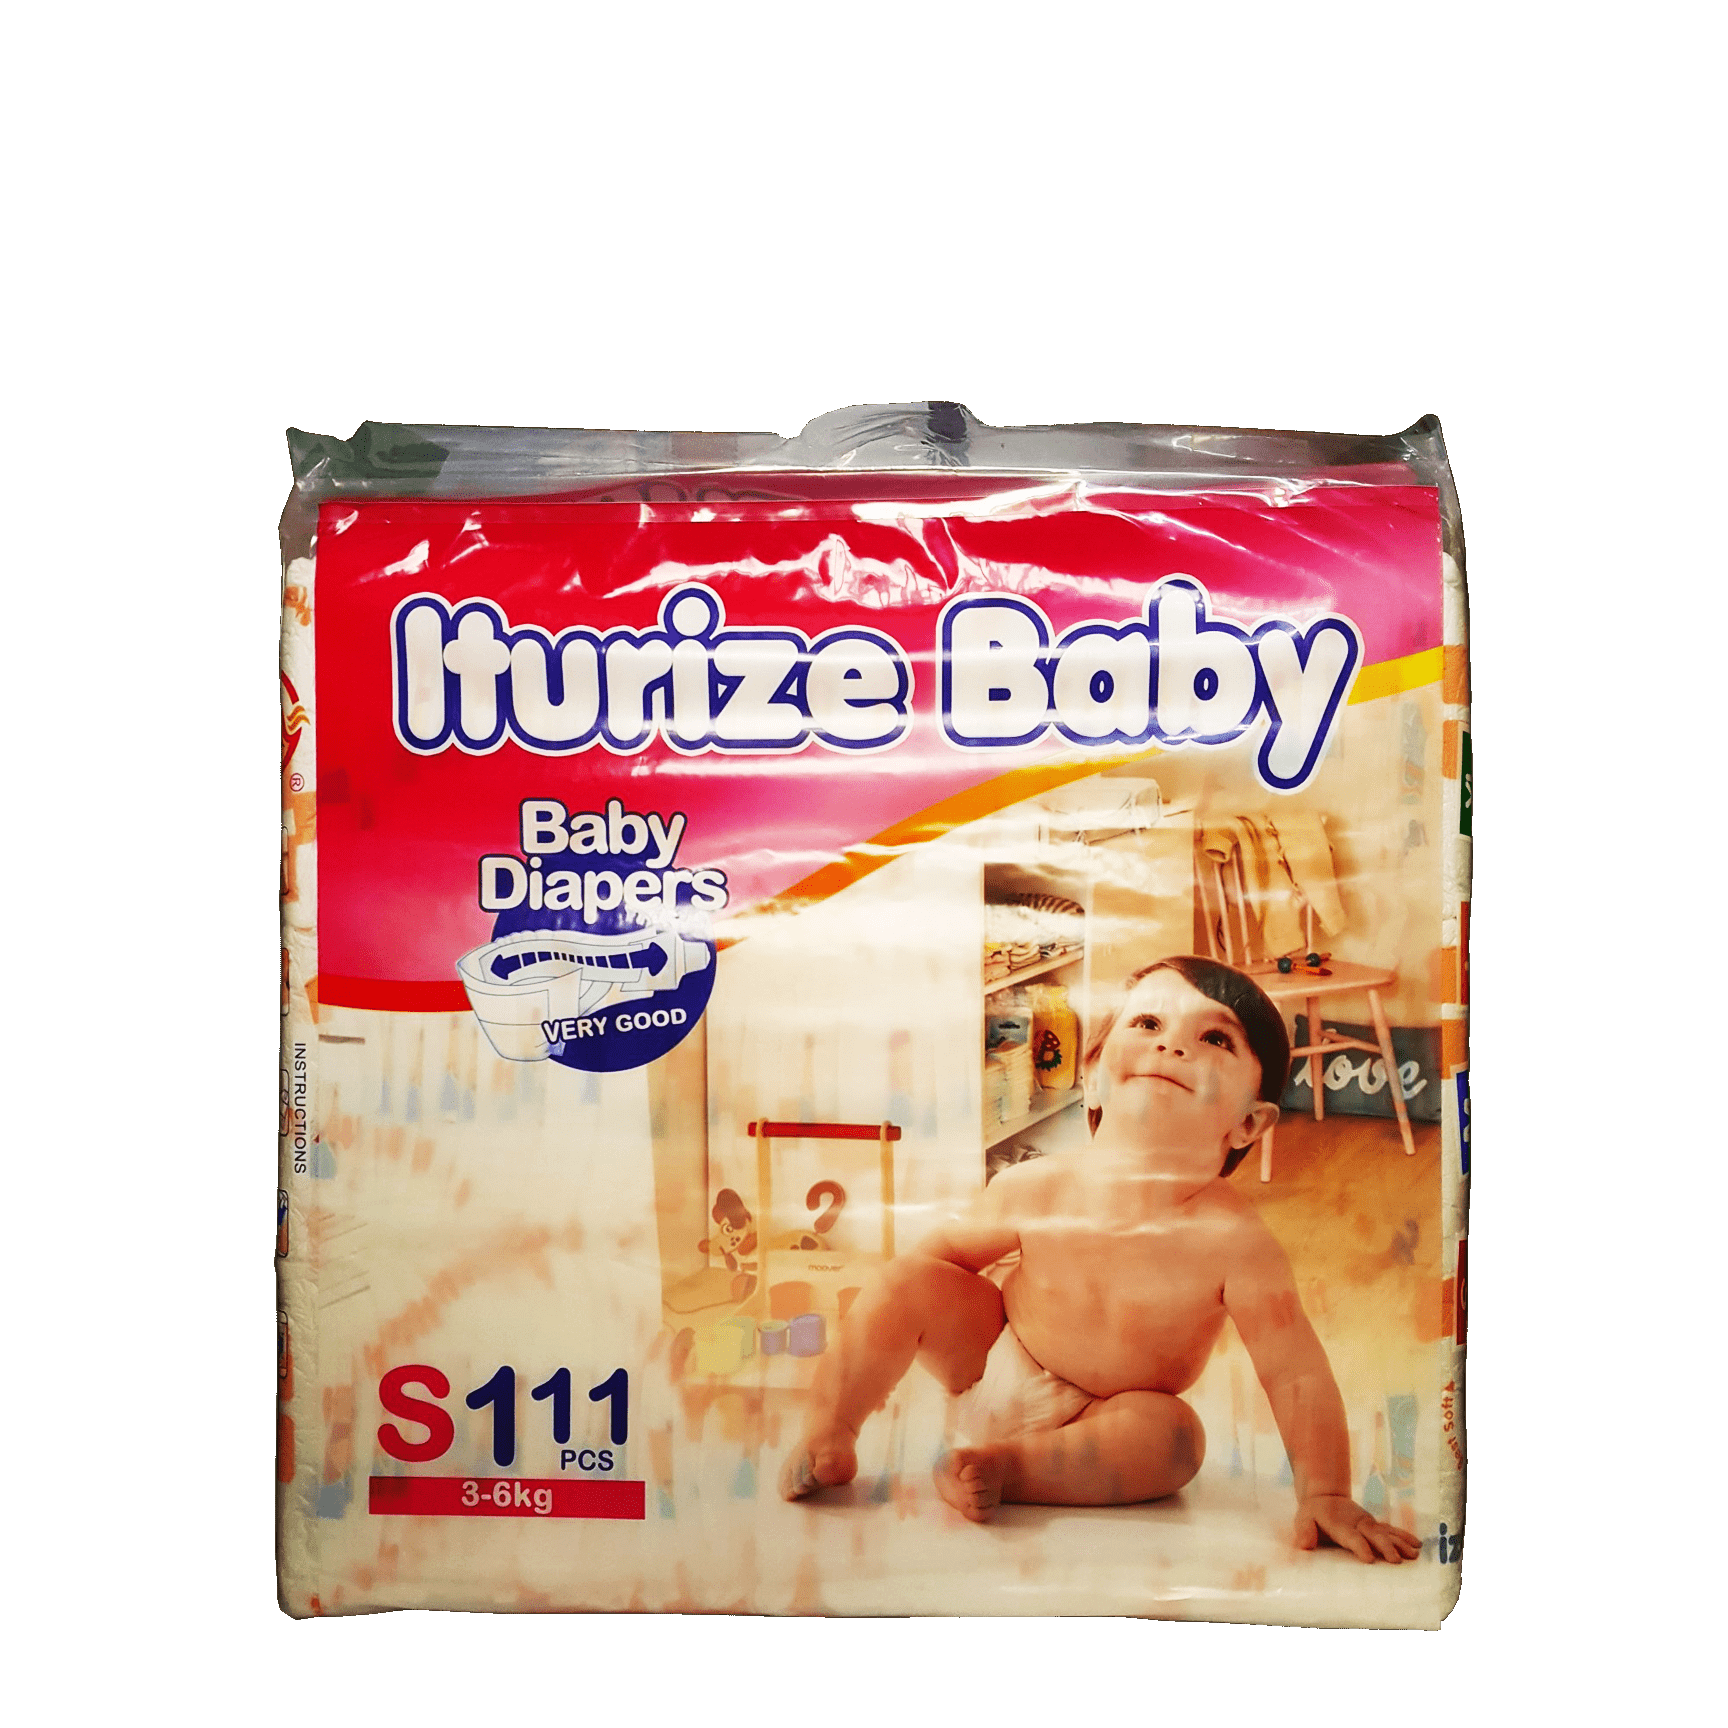 Iturize Baby Wipers (3-6Kg) Price: 19000 Rwf Delivery Fees: 1000 Rwf